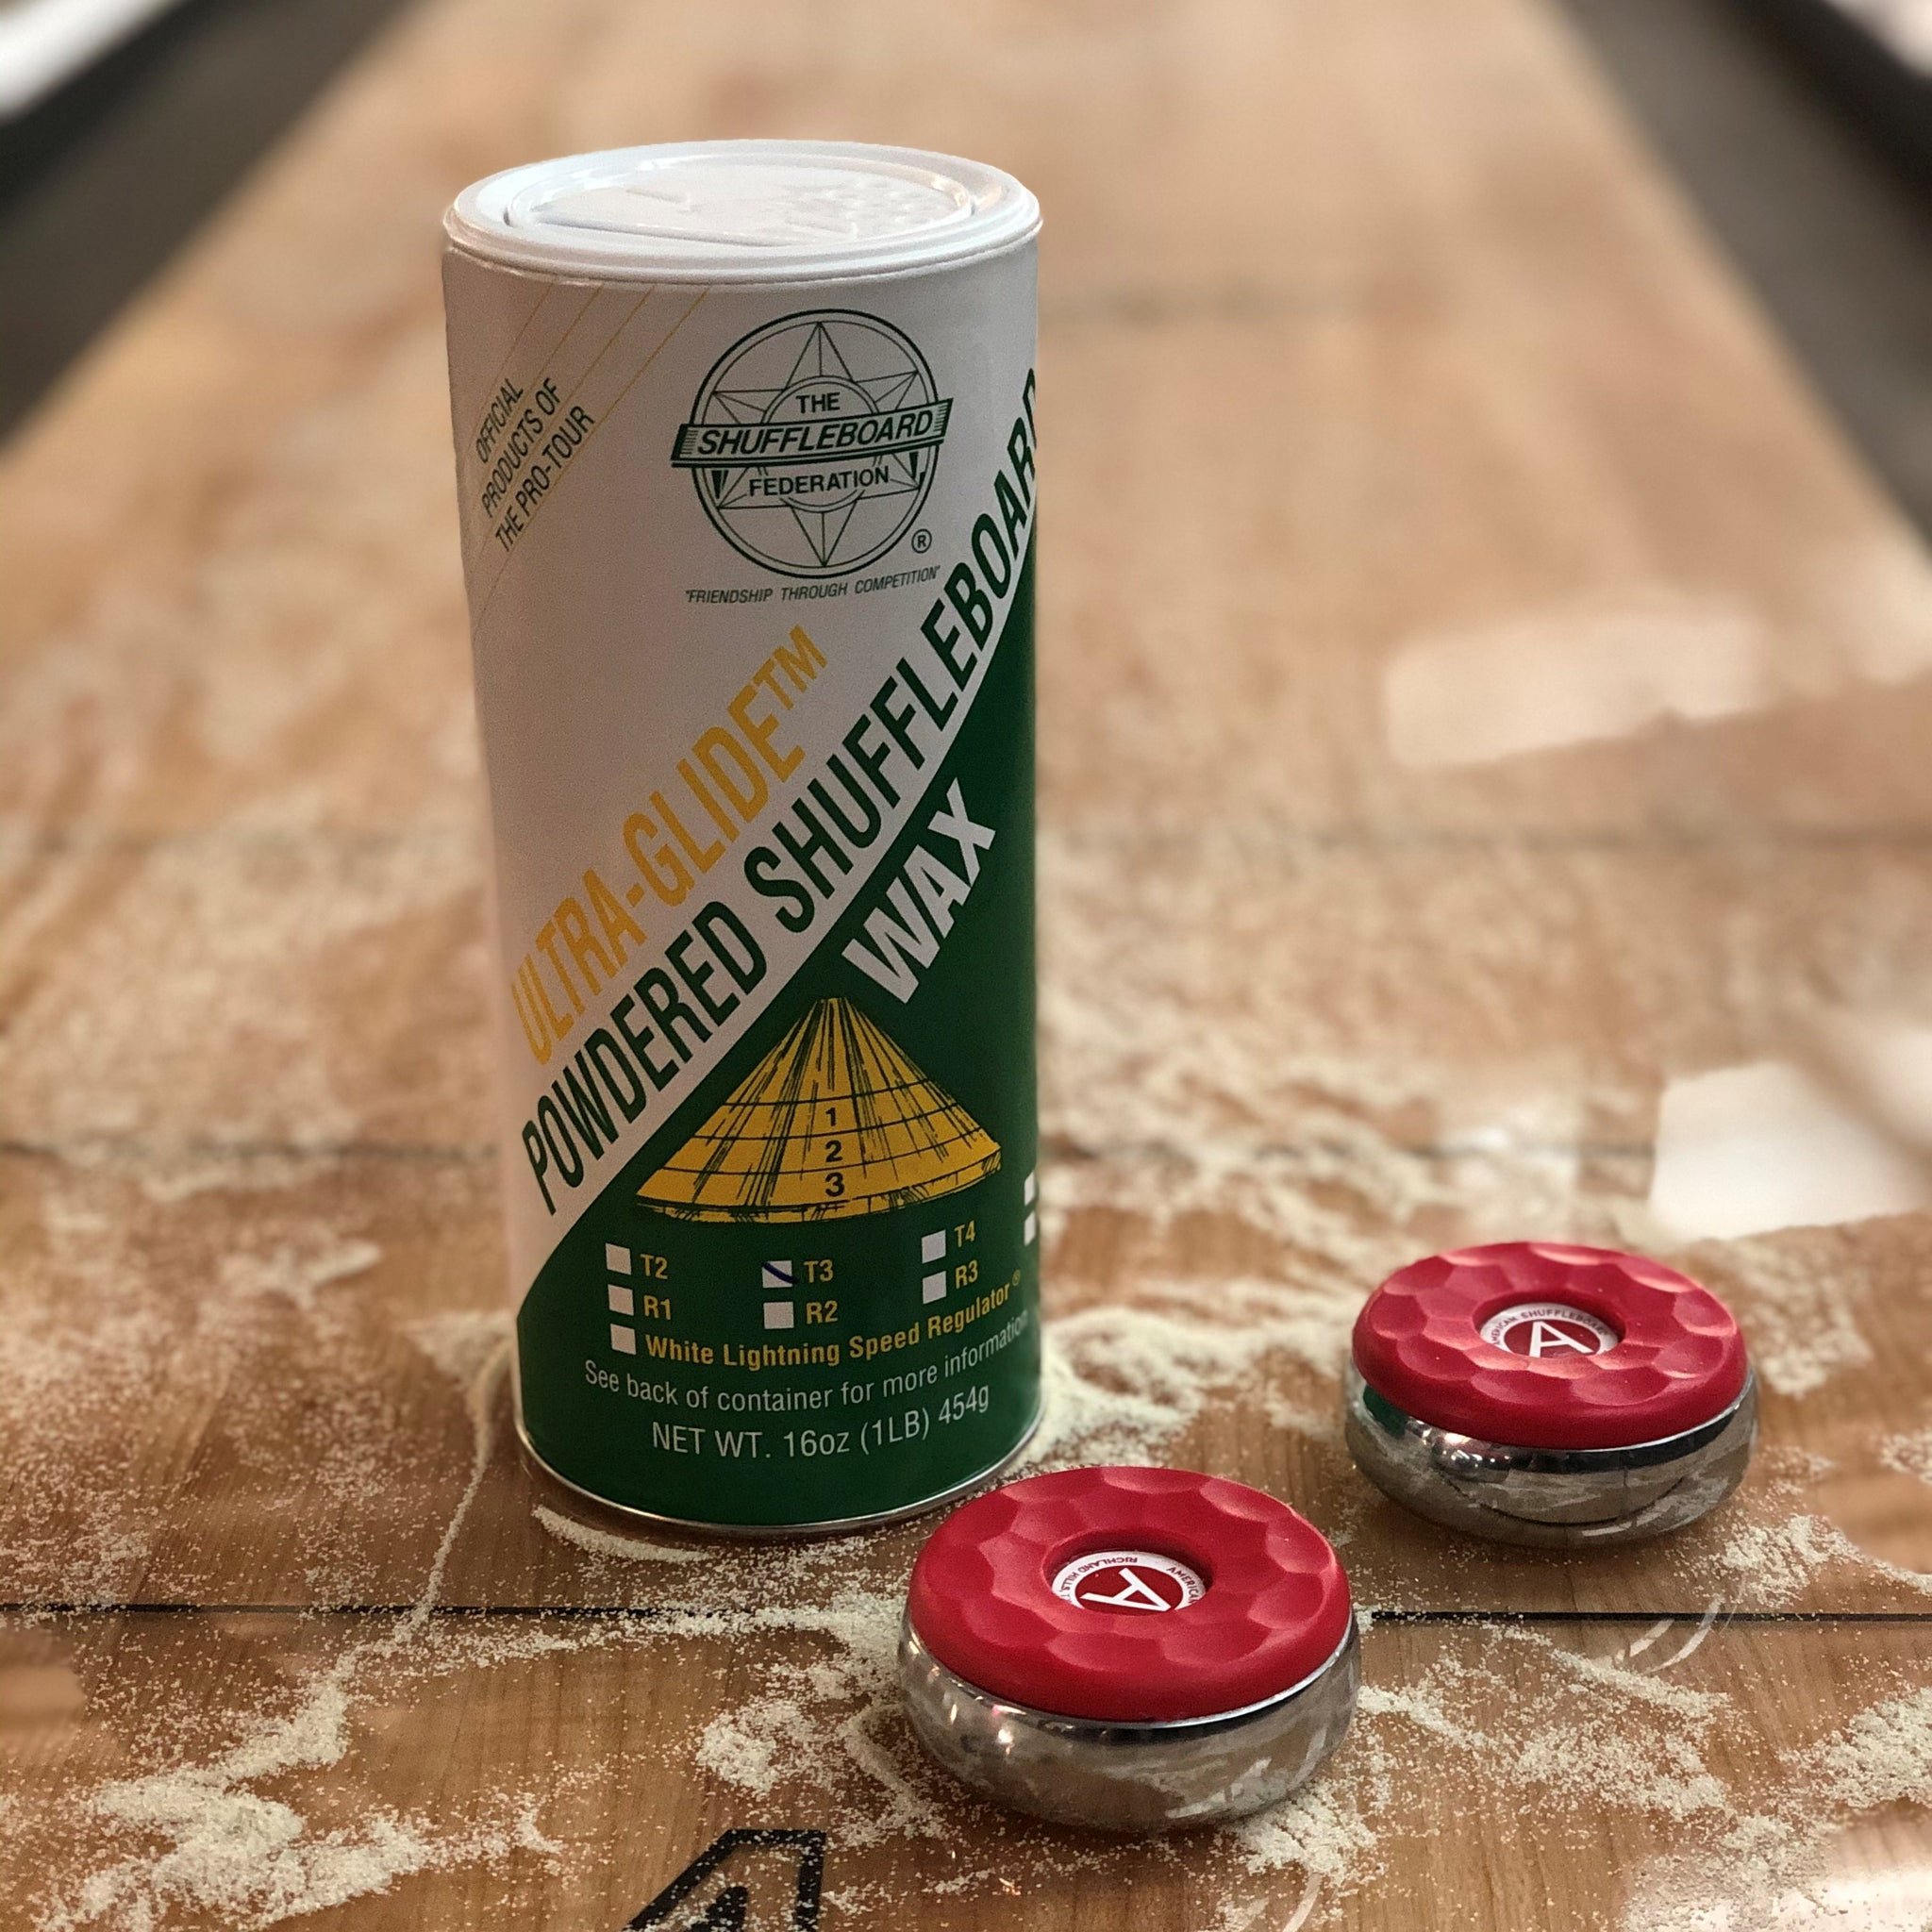 Shuffleboard Table Powder Wax Speed T3 - Faster